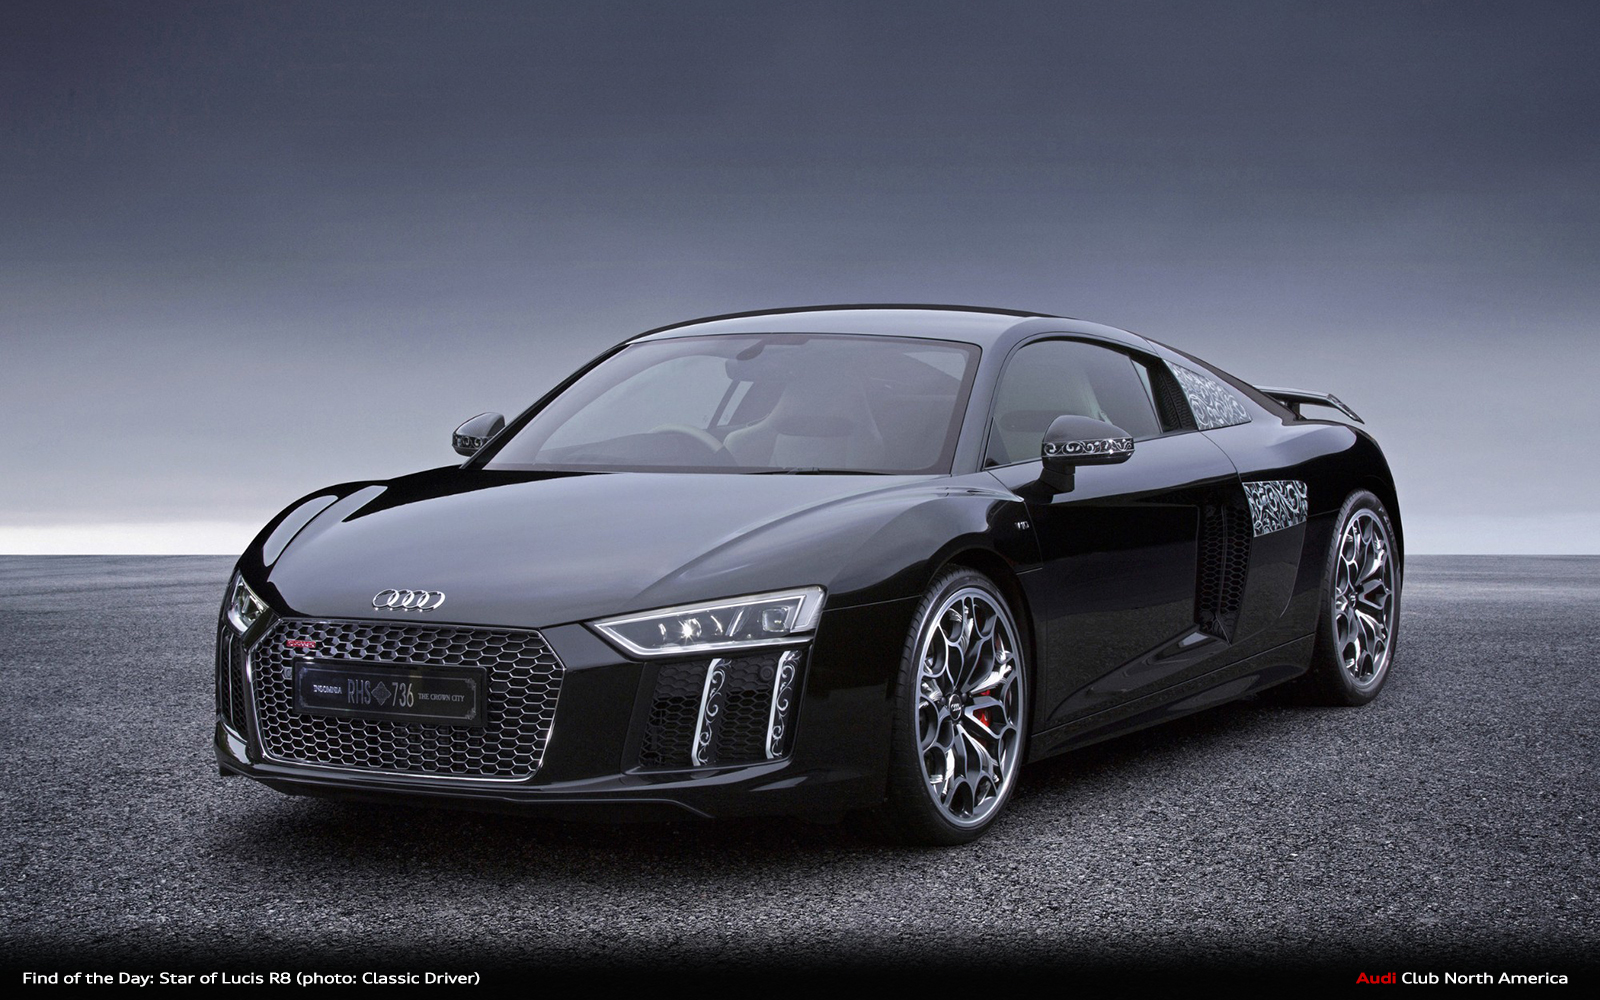 Find Of The Day One Of A Kind Star Of Lucis R8 V10 Plus Audi Club North America